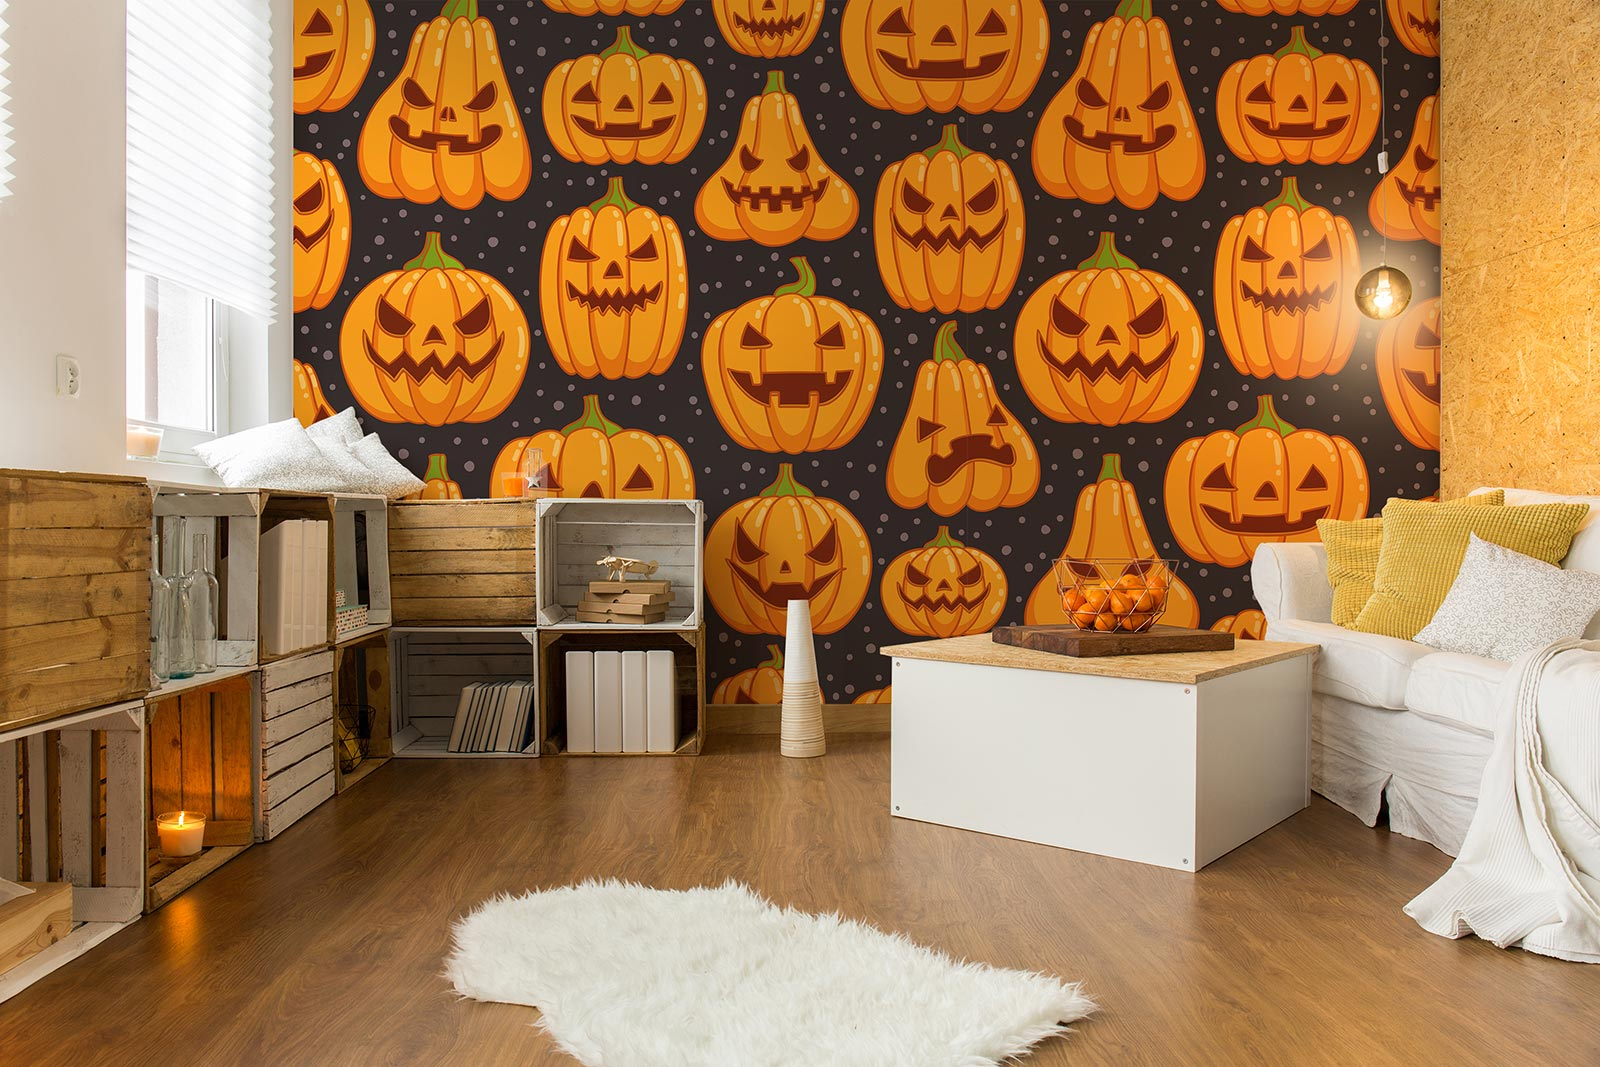 Scary pumkins wall decals